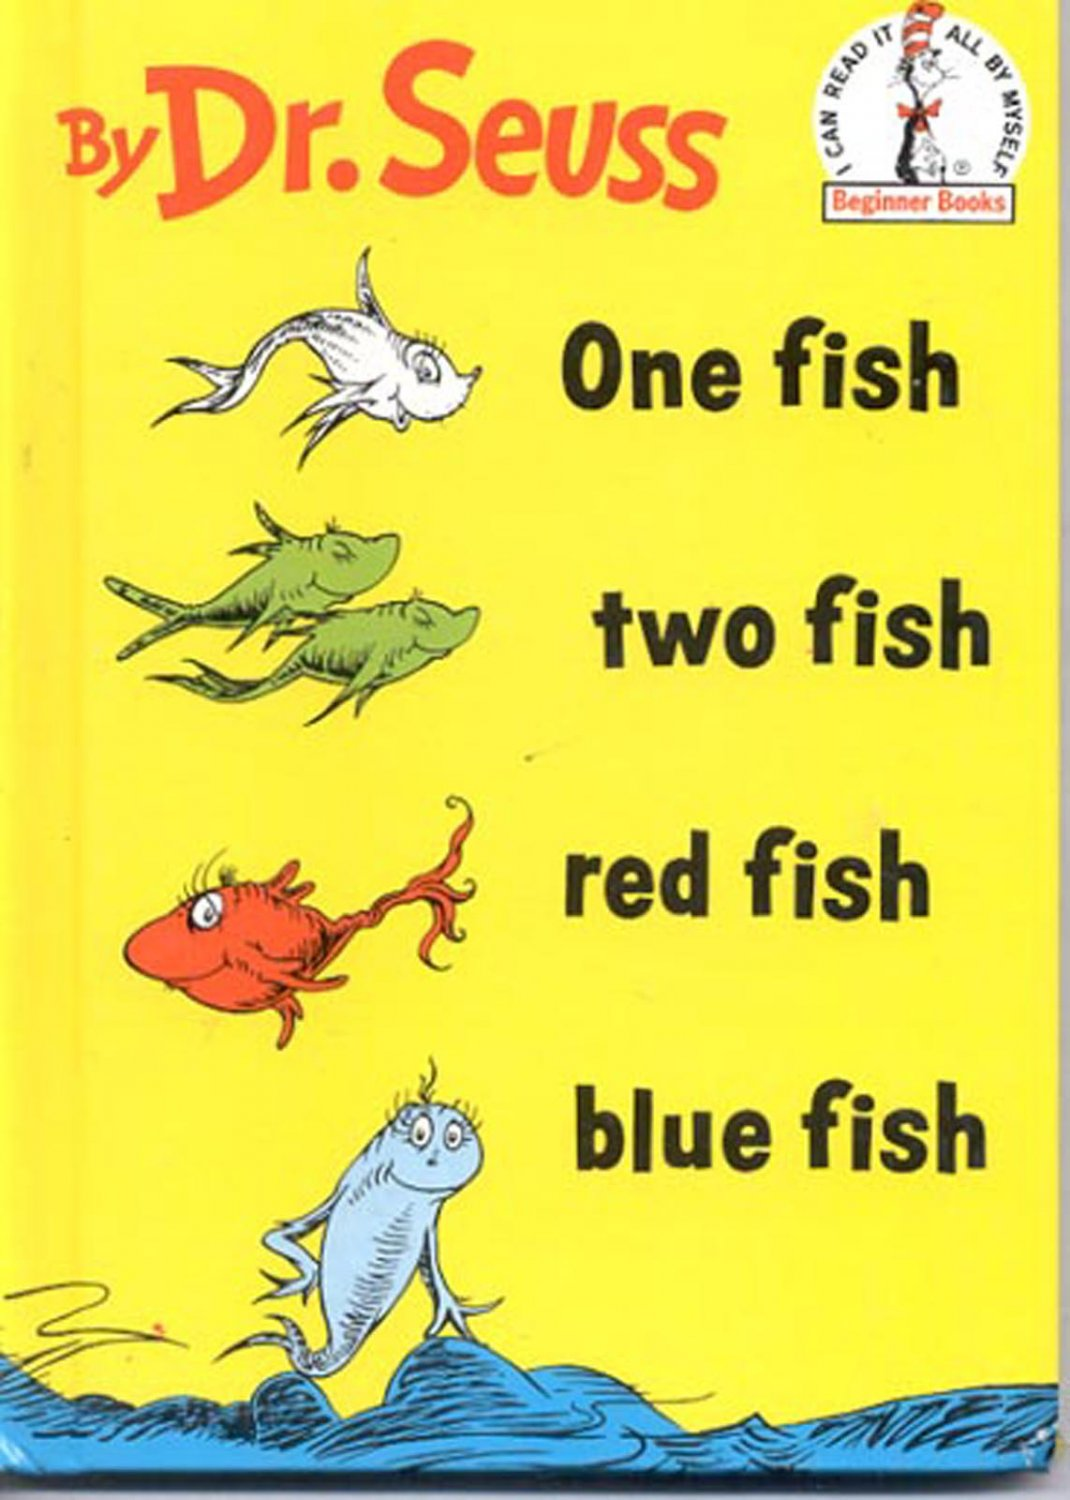 One fish two fish red fish blue fish by dr seuss hb for Red fish blue fish dr seuss